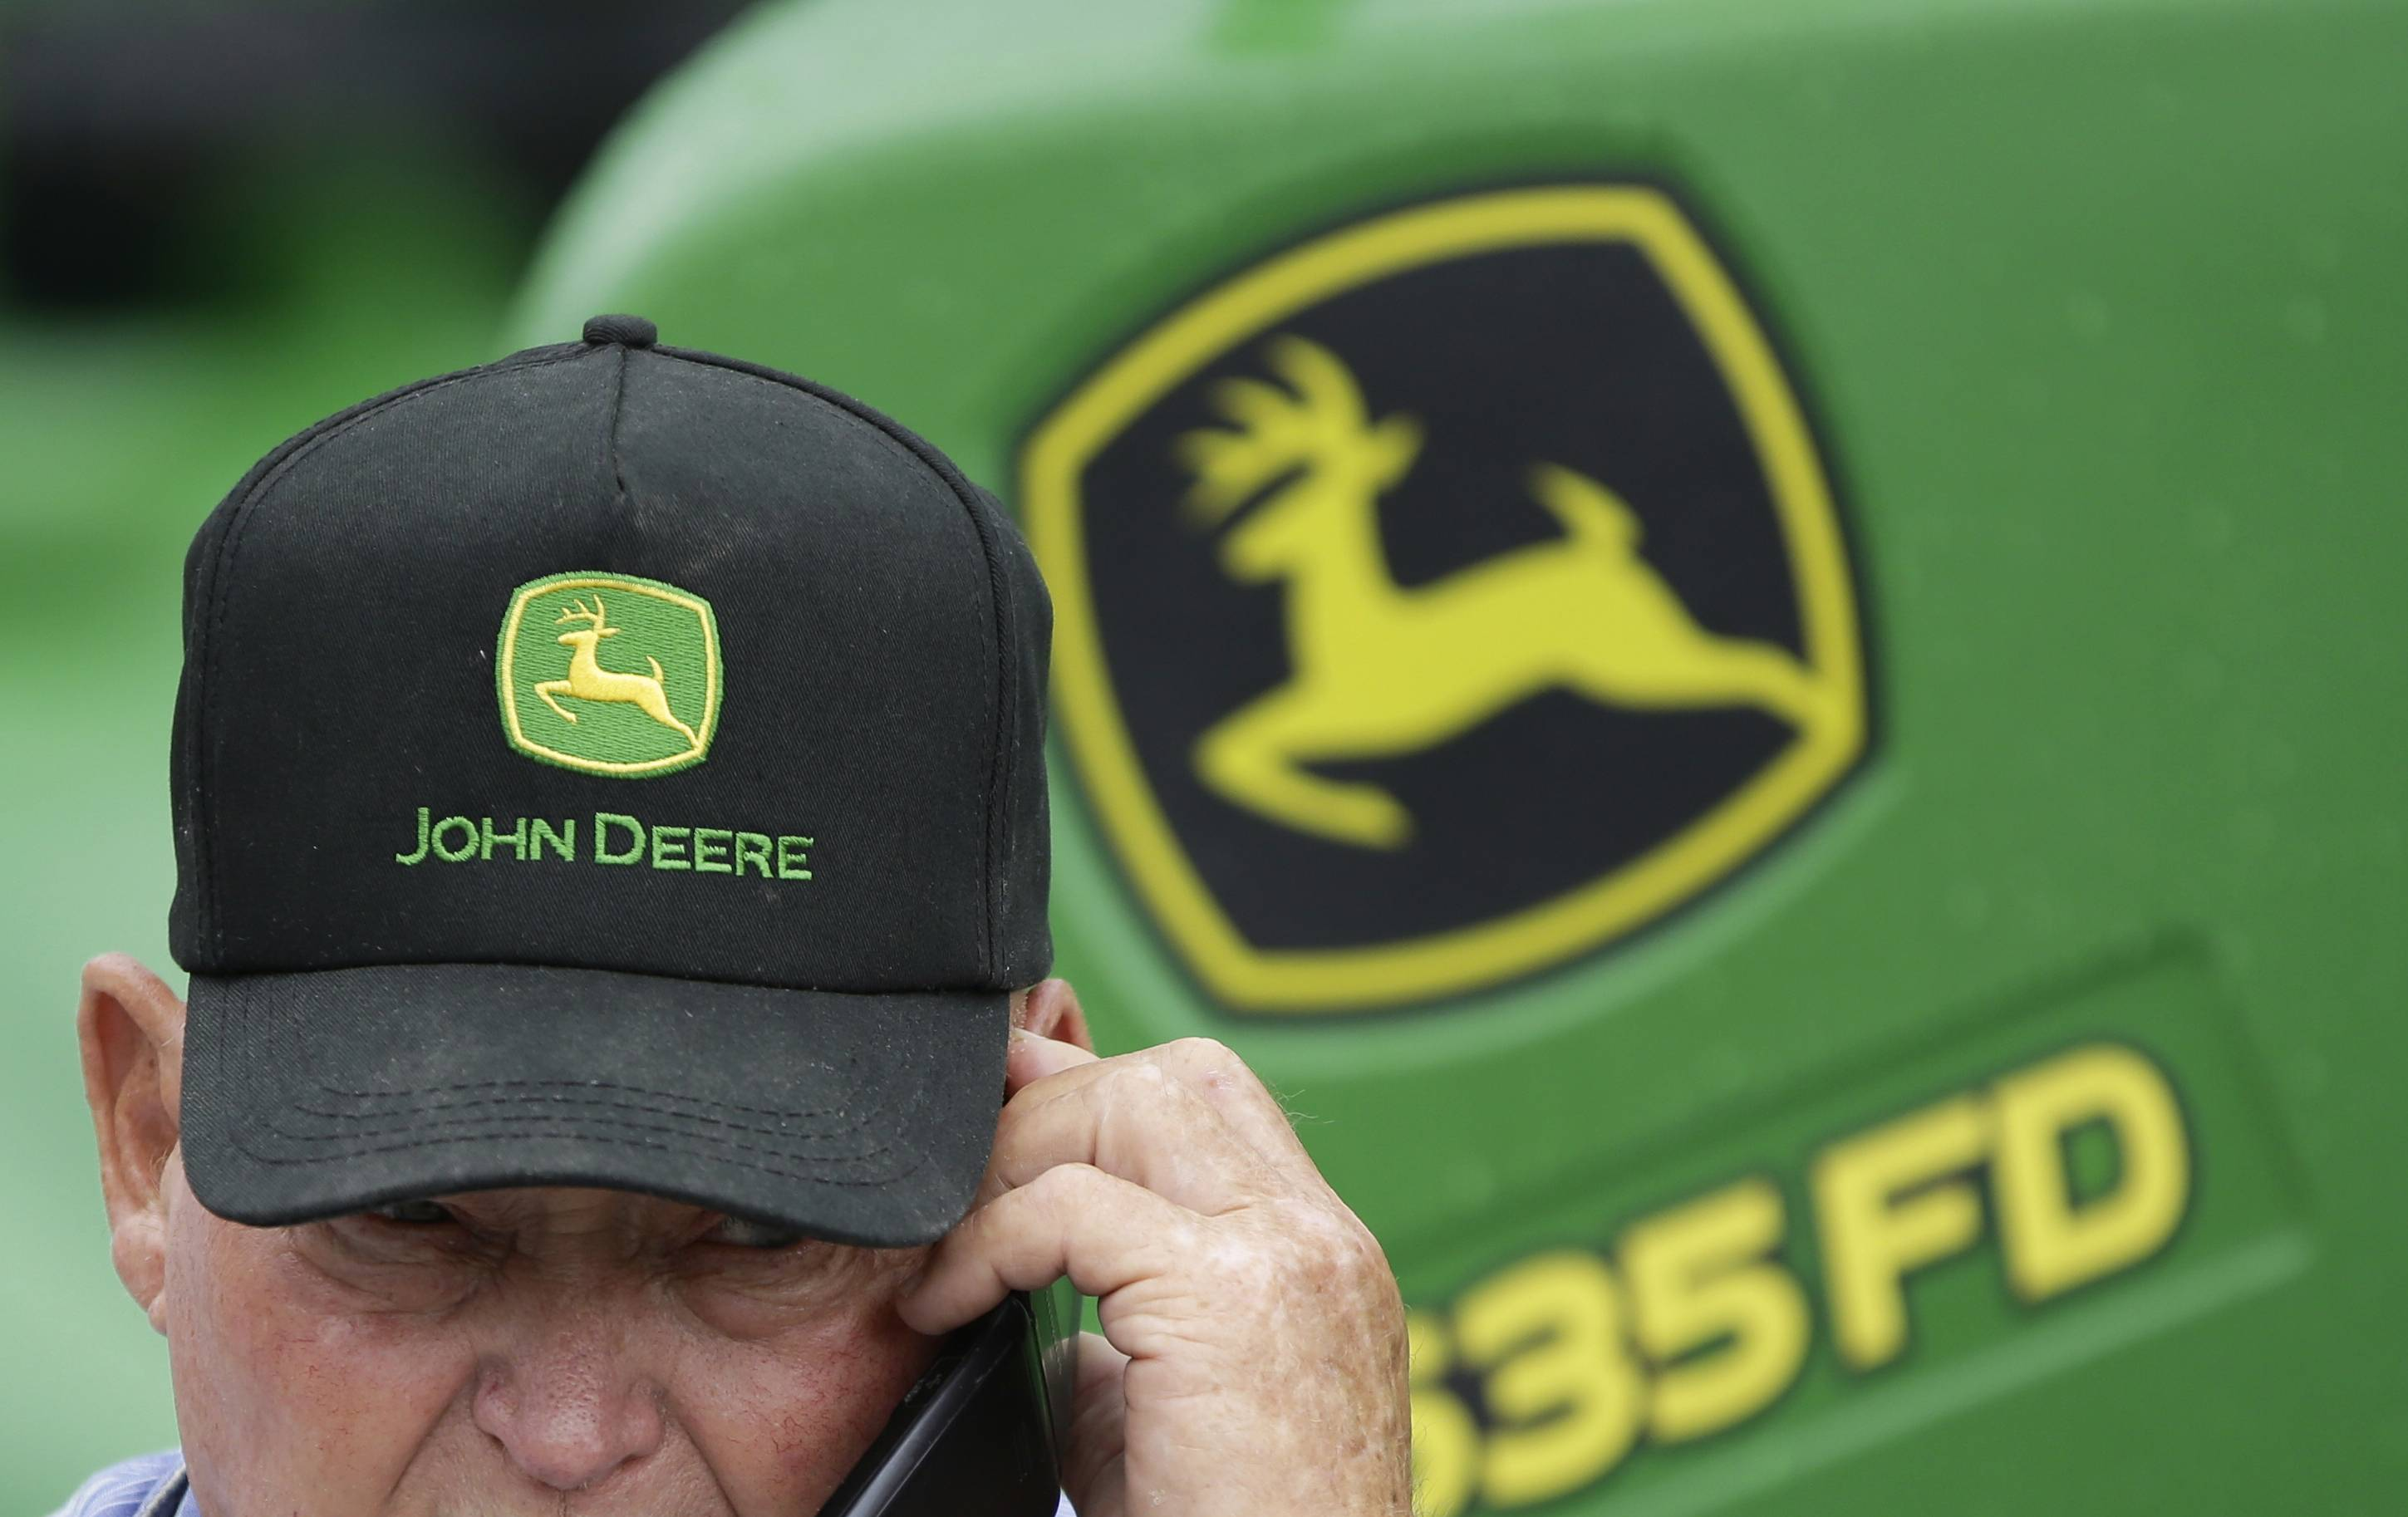 Deere is reporting a 9.5 percent decline in second-quarter net income on lower demand for farming equipment.